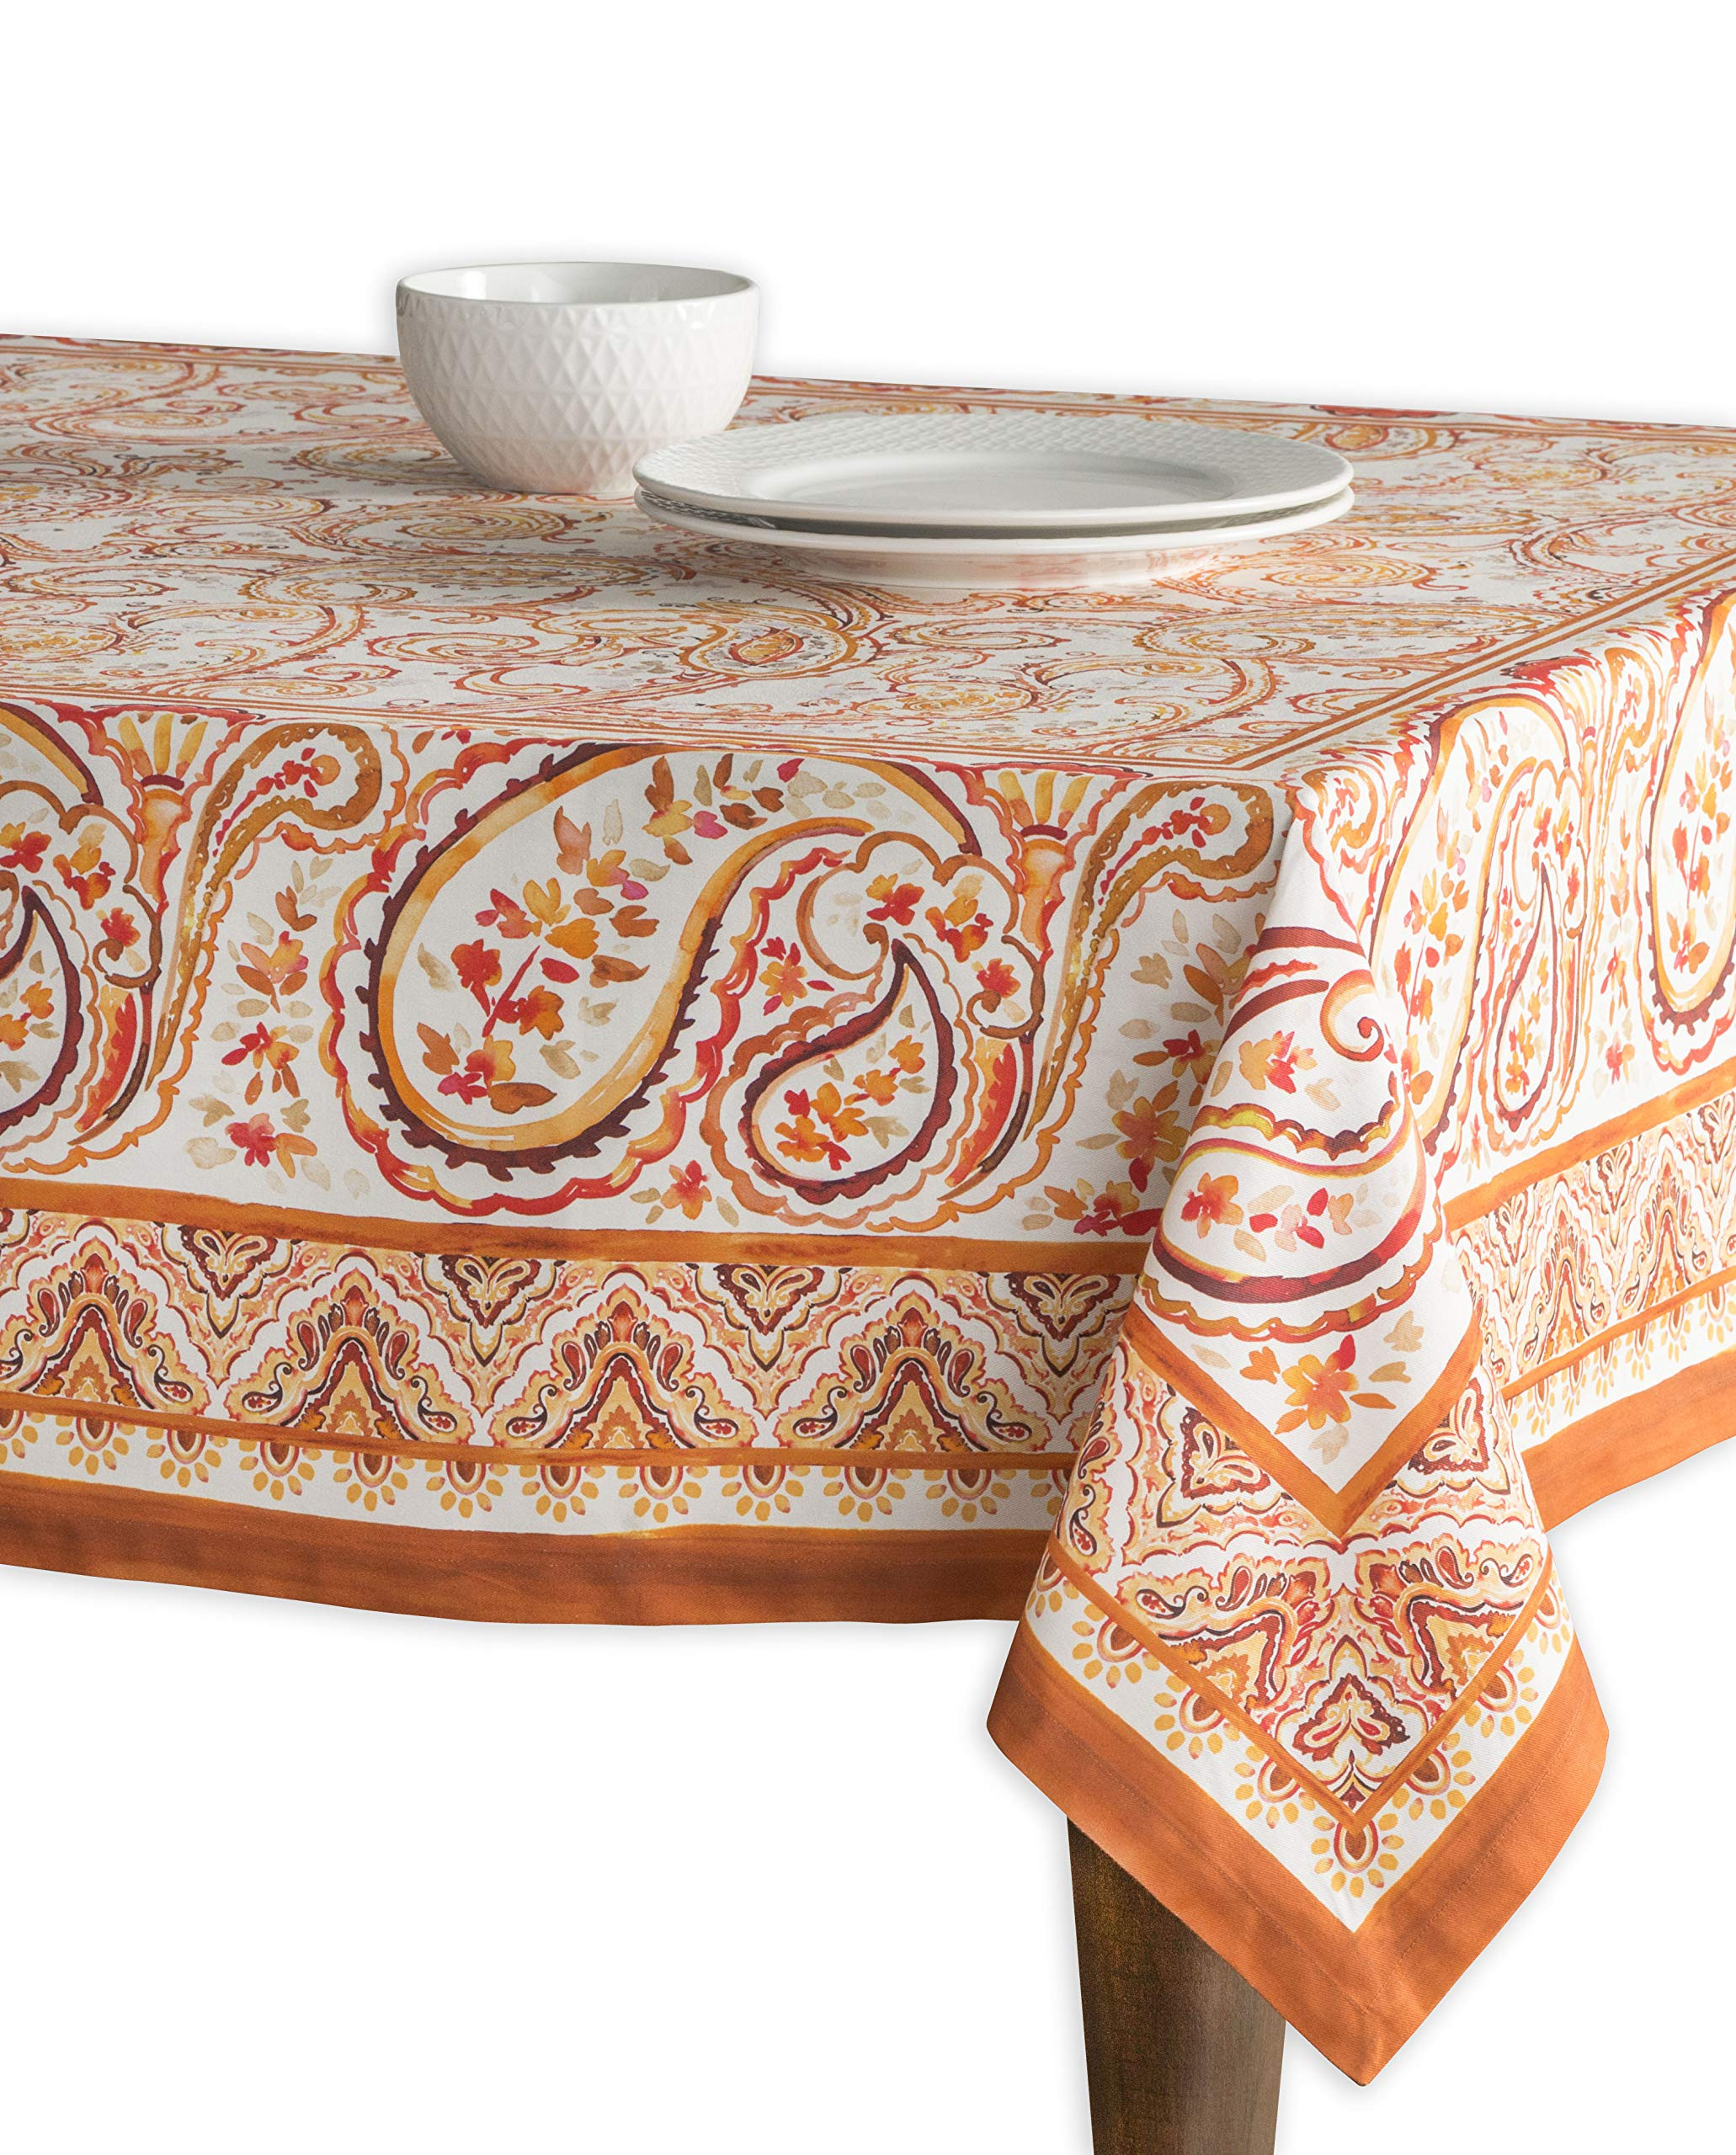 "Maison d' Hermine Palatial Paisley 100% Cotton Tablecloth 60 - Inch by 108 - Inch. - Designed in Europe CHRISTMAS CLEARANCE SALE - SPECIAL DISCOUNT PRICE. This Palatial Paisley tablecloth featured in the list of HOUSE BEAUTIFUL's ""16 Thanksgiving Tablecloths You'll Want To Keep Year Round"". 100% Cotton & Machine Washable. Package Includes : 1 Tablecloth - tablecloths, kitchen-dining-room-table-linens, kitchen-dining-room - 91pjiEF8U0L -"